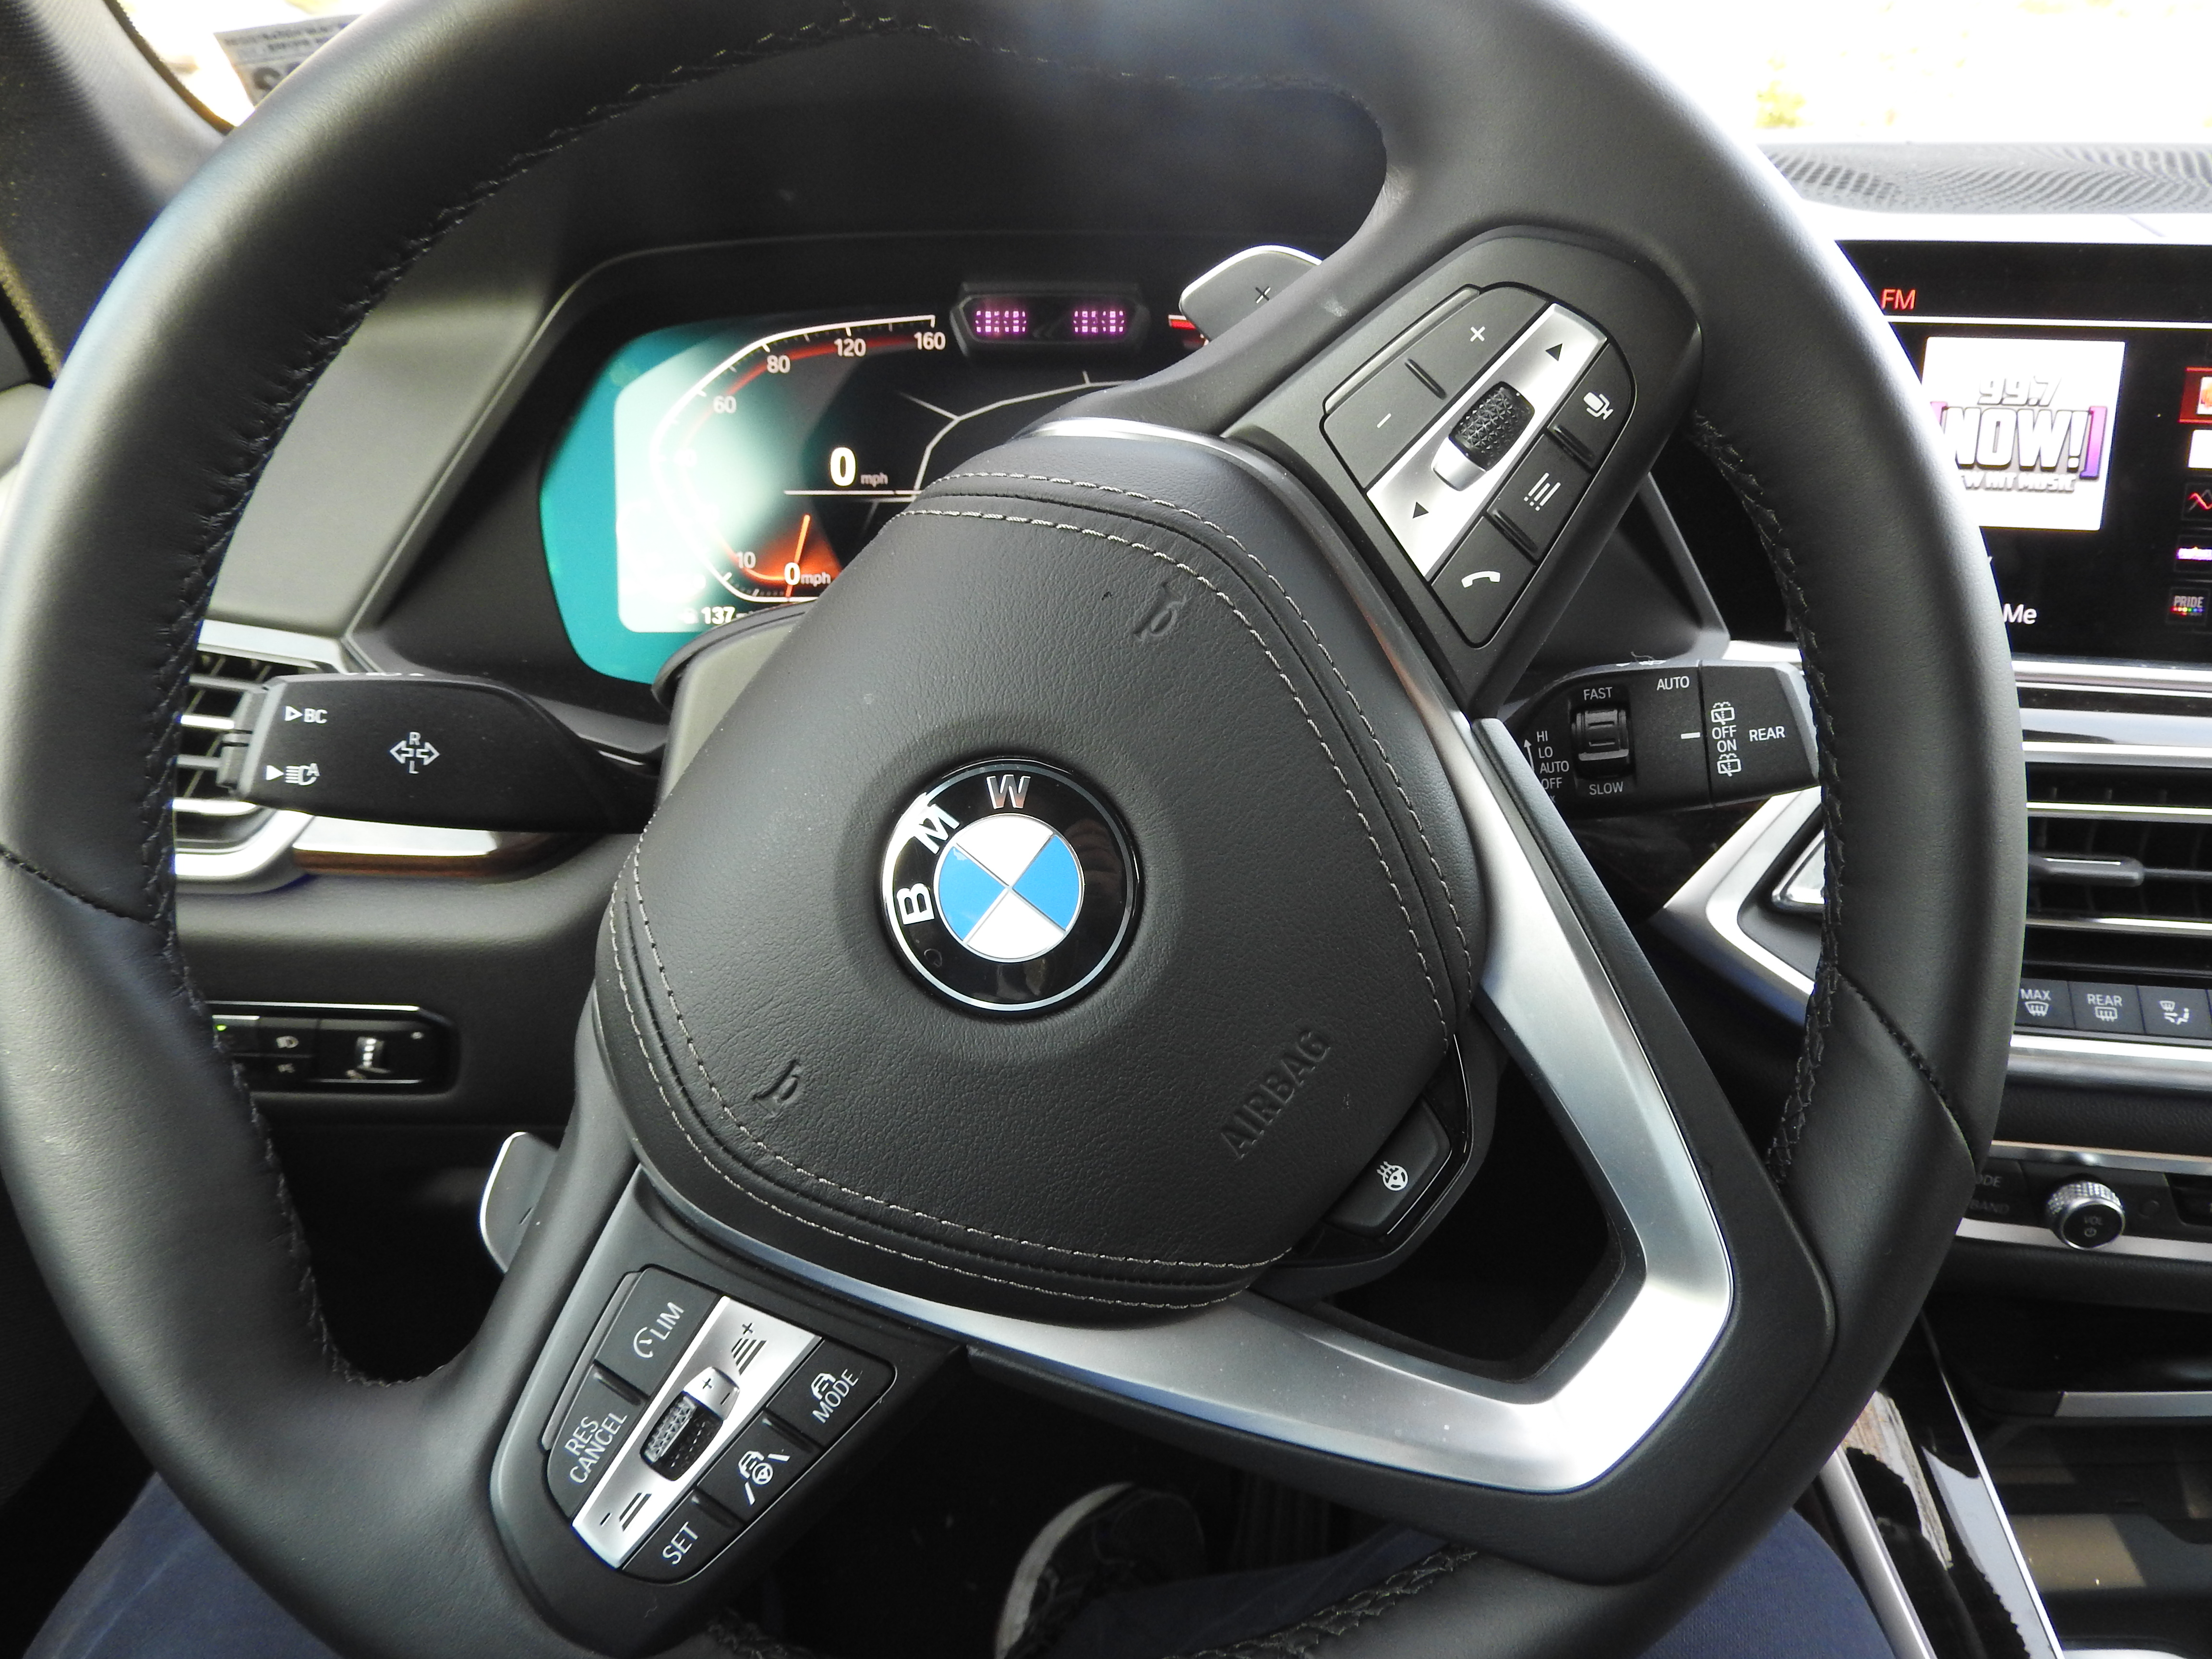 Bmw X5 Xdrive40i Suv Is Loaded With Tech Gadgets To Entertain And Protect You Venturebeat